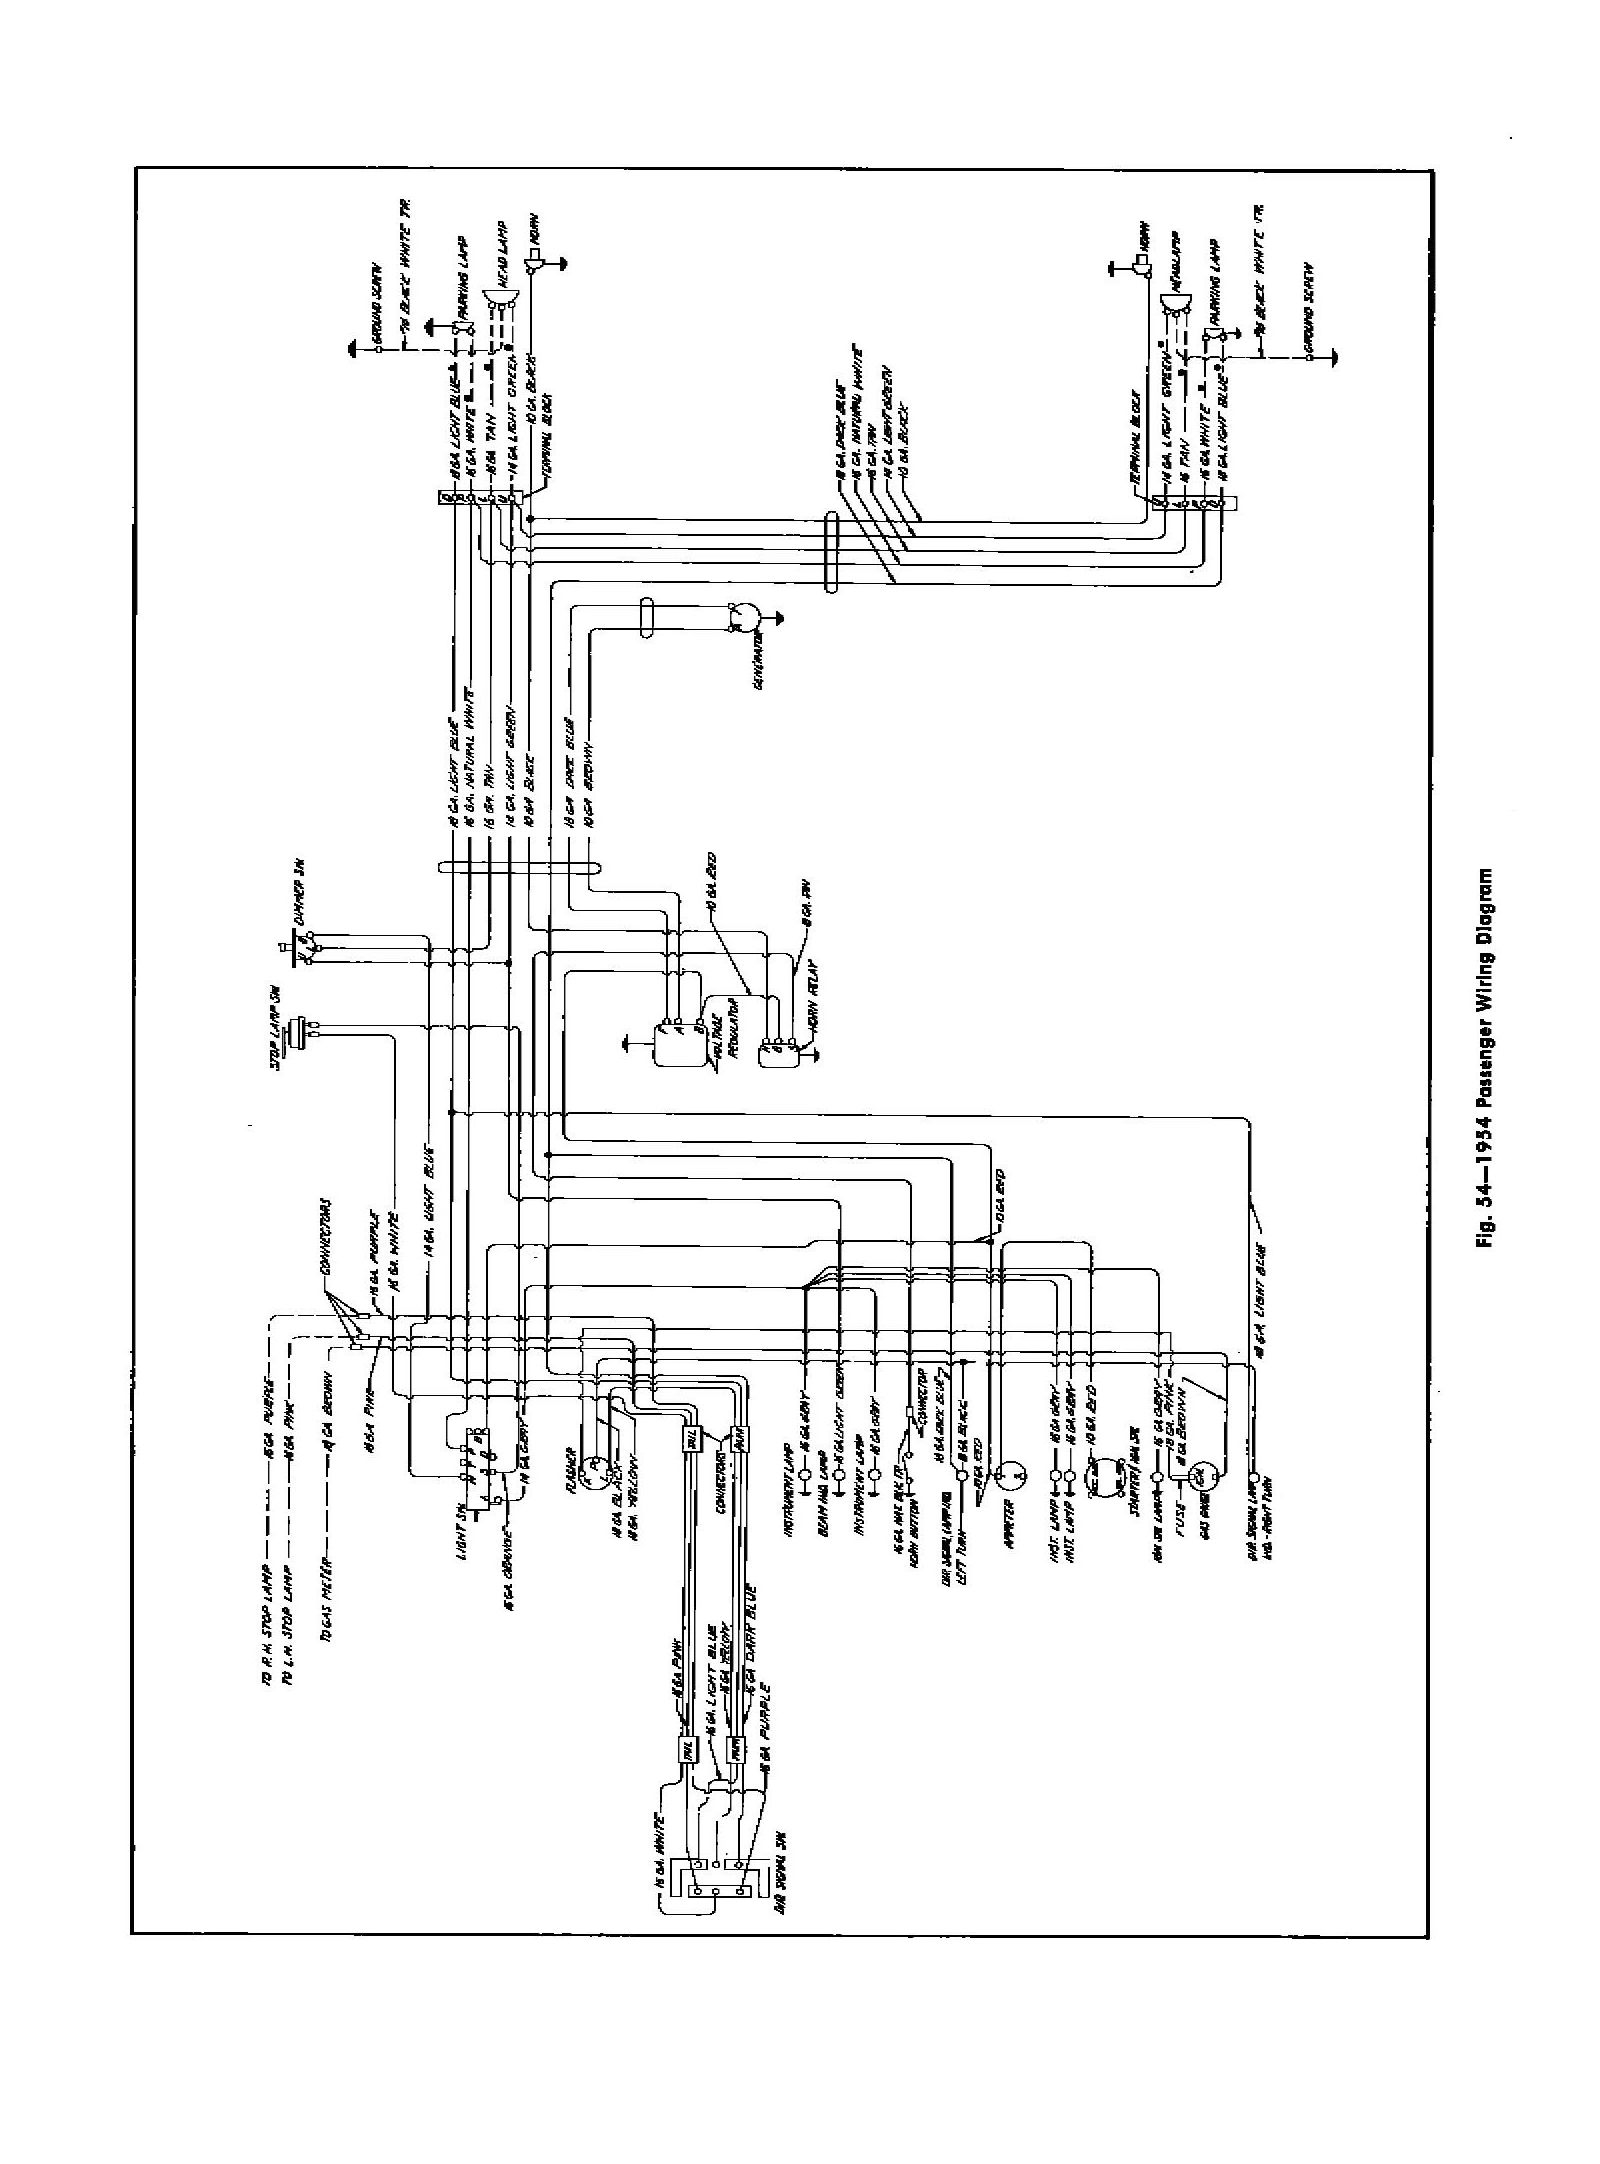 hight resolution of 3100 v6 engine wiring diagram wiring library rh 69 kandelhof restaurant de ecu harness diagram ecu